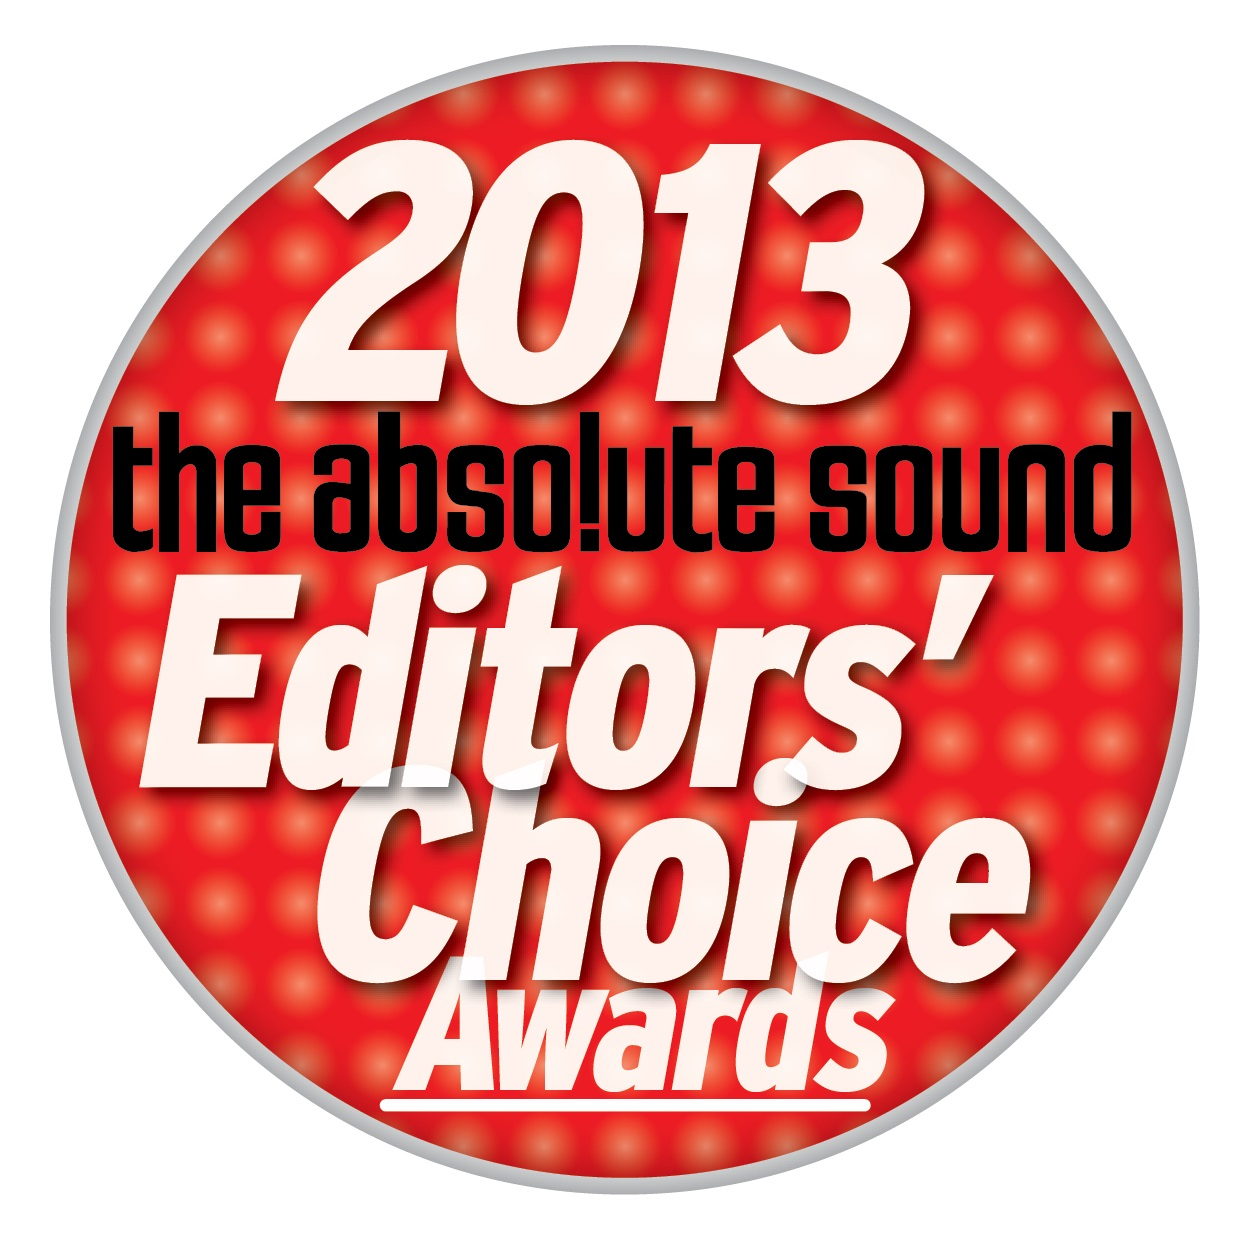 The Absolute Sound Editor's Choice Award 2013